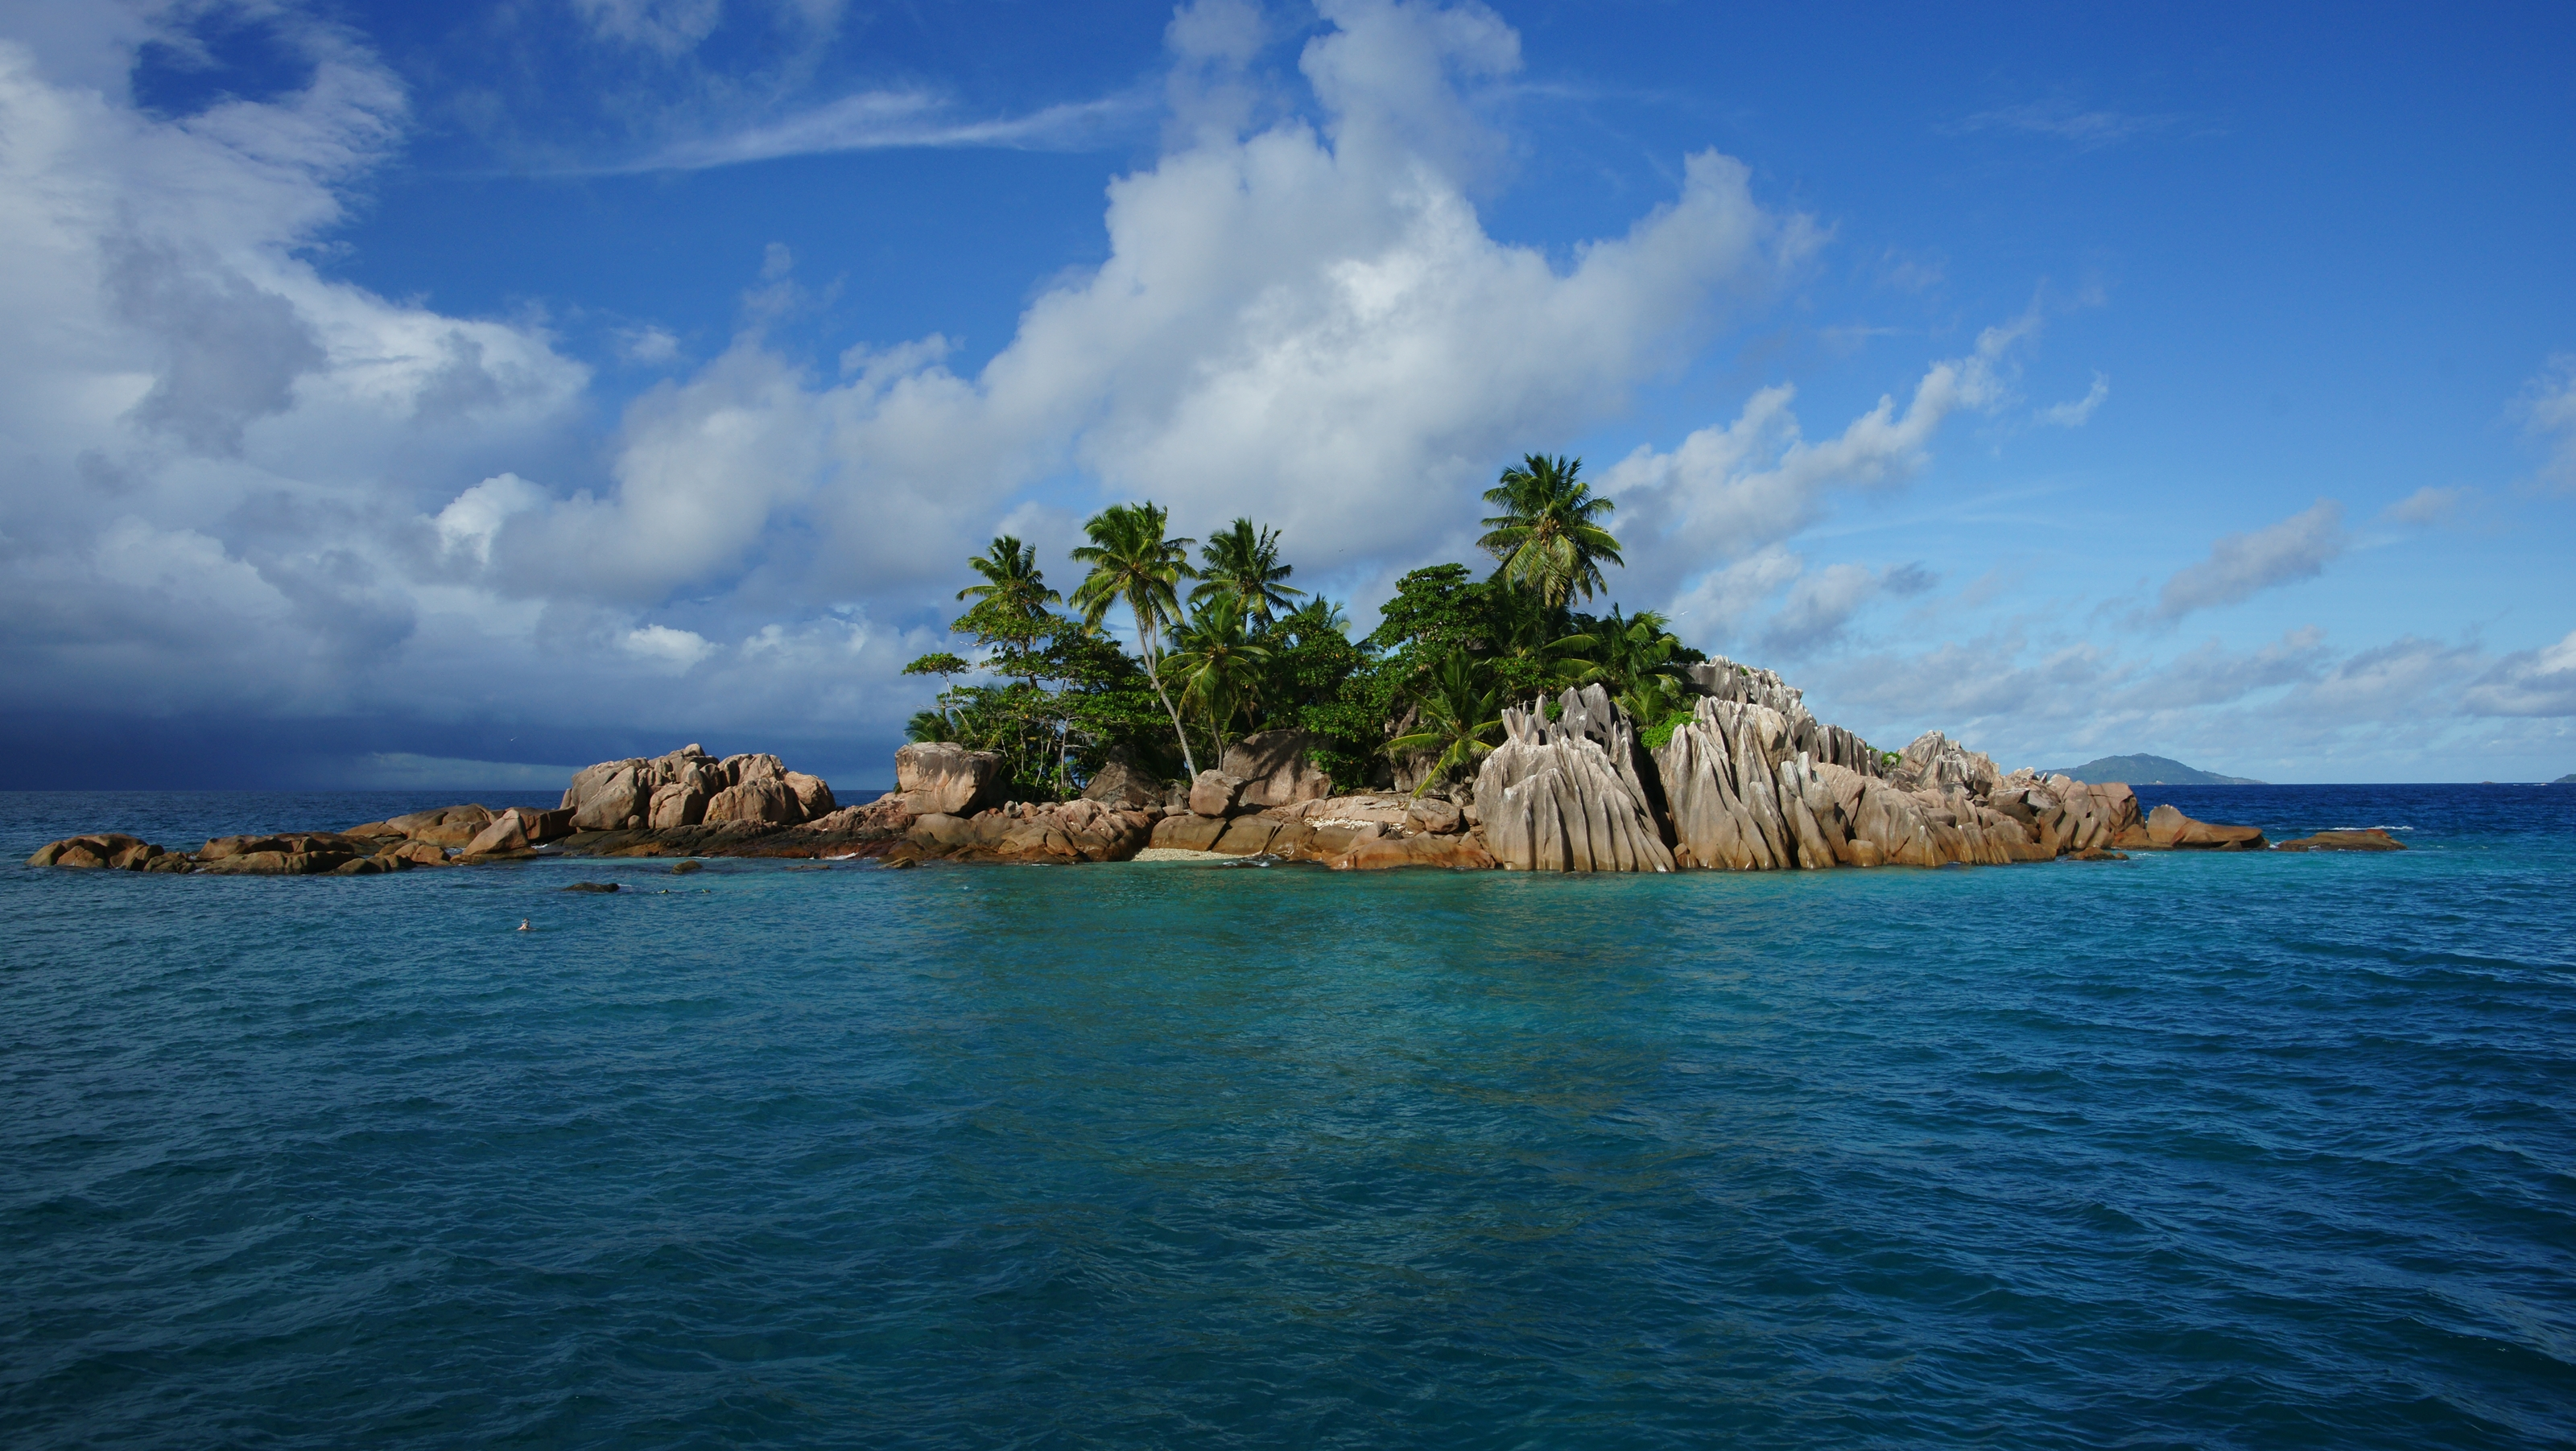 Island Wallpapers, PK29 High Resolution Island Pictures ...